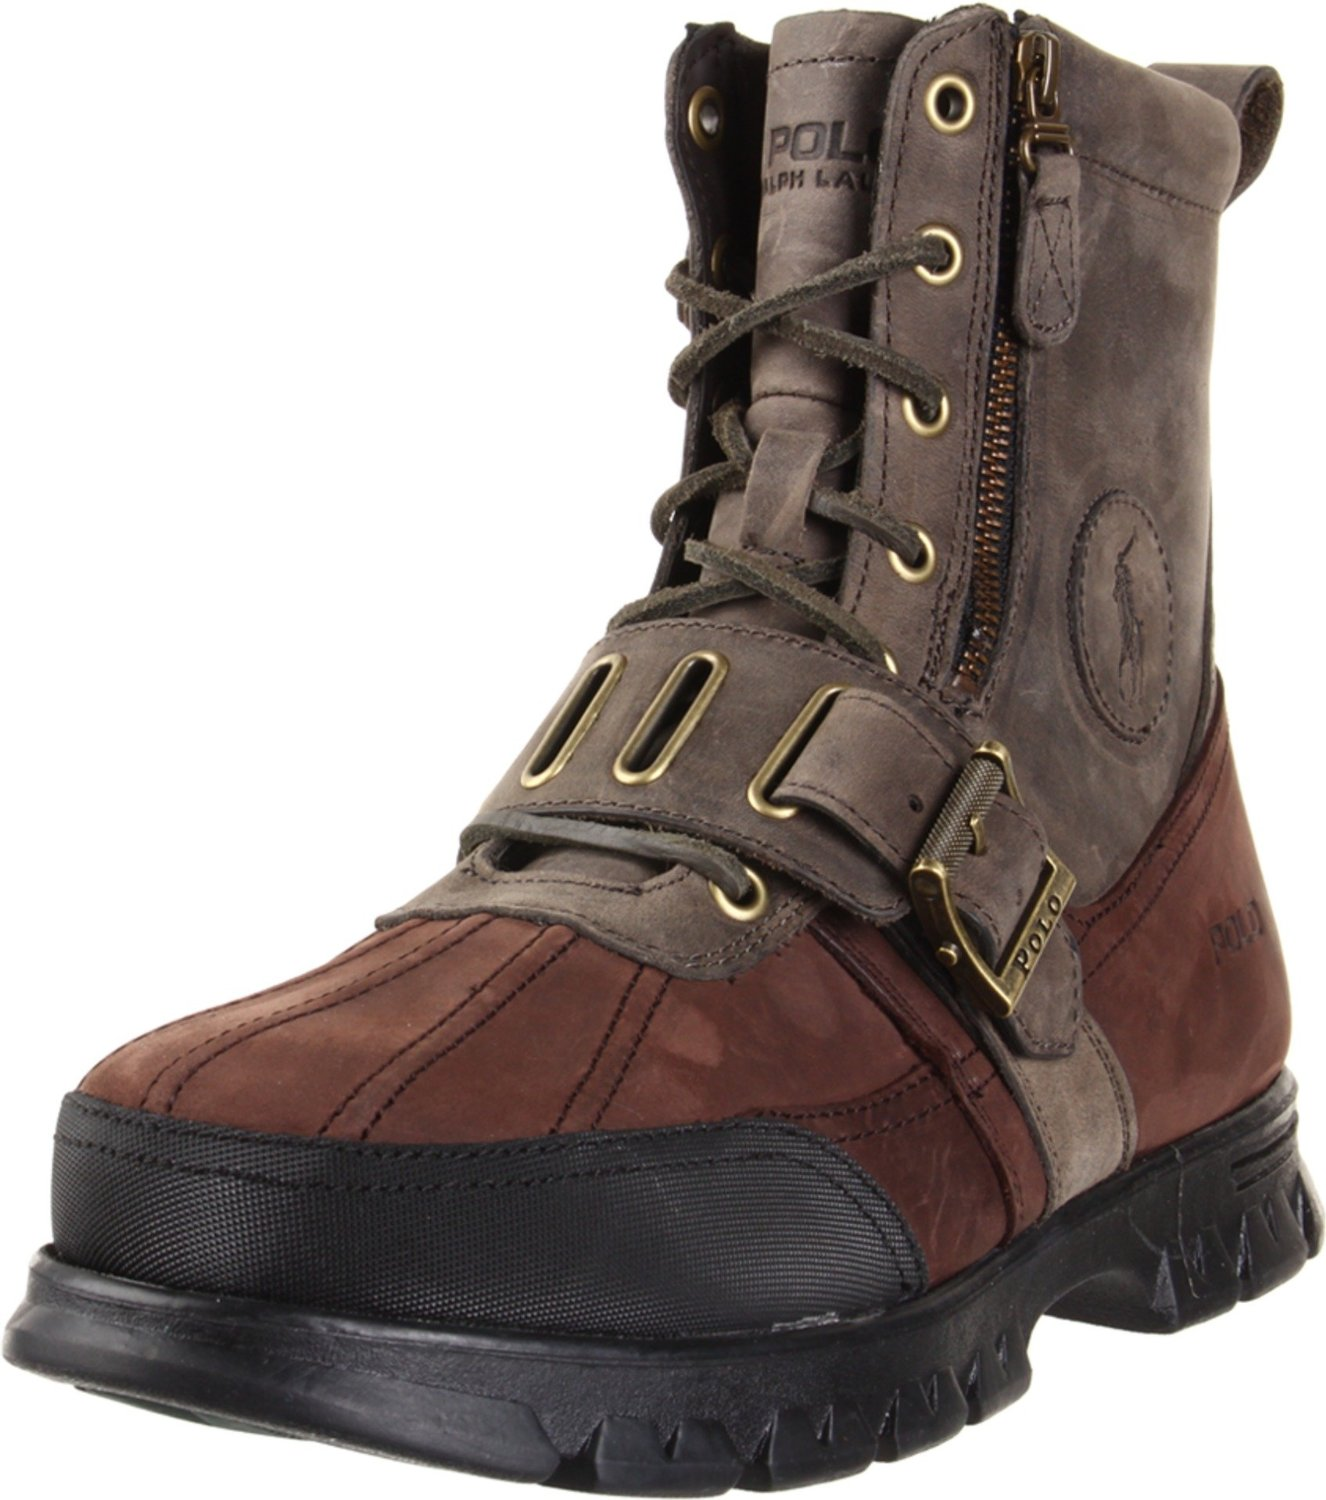 Rocks Shoes Polo Ralph Lauren Men S Andres Ankle Boot